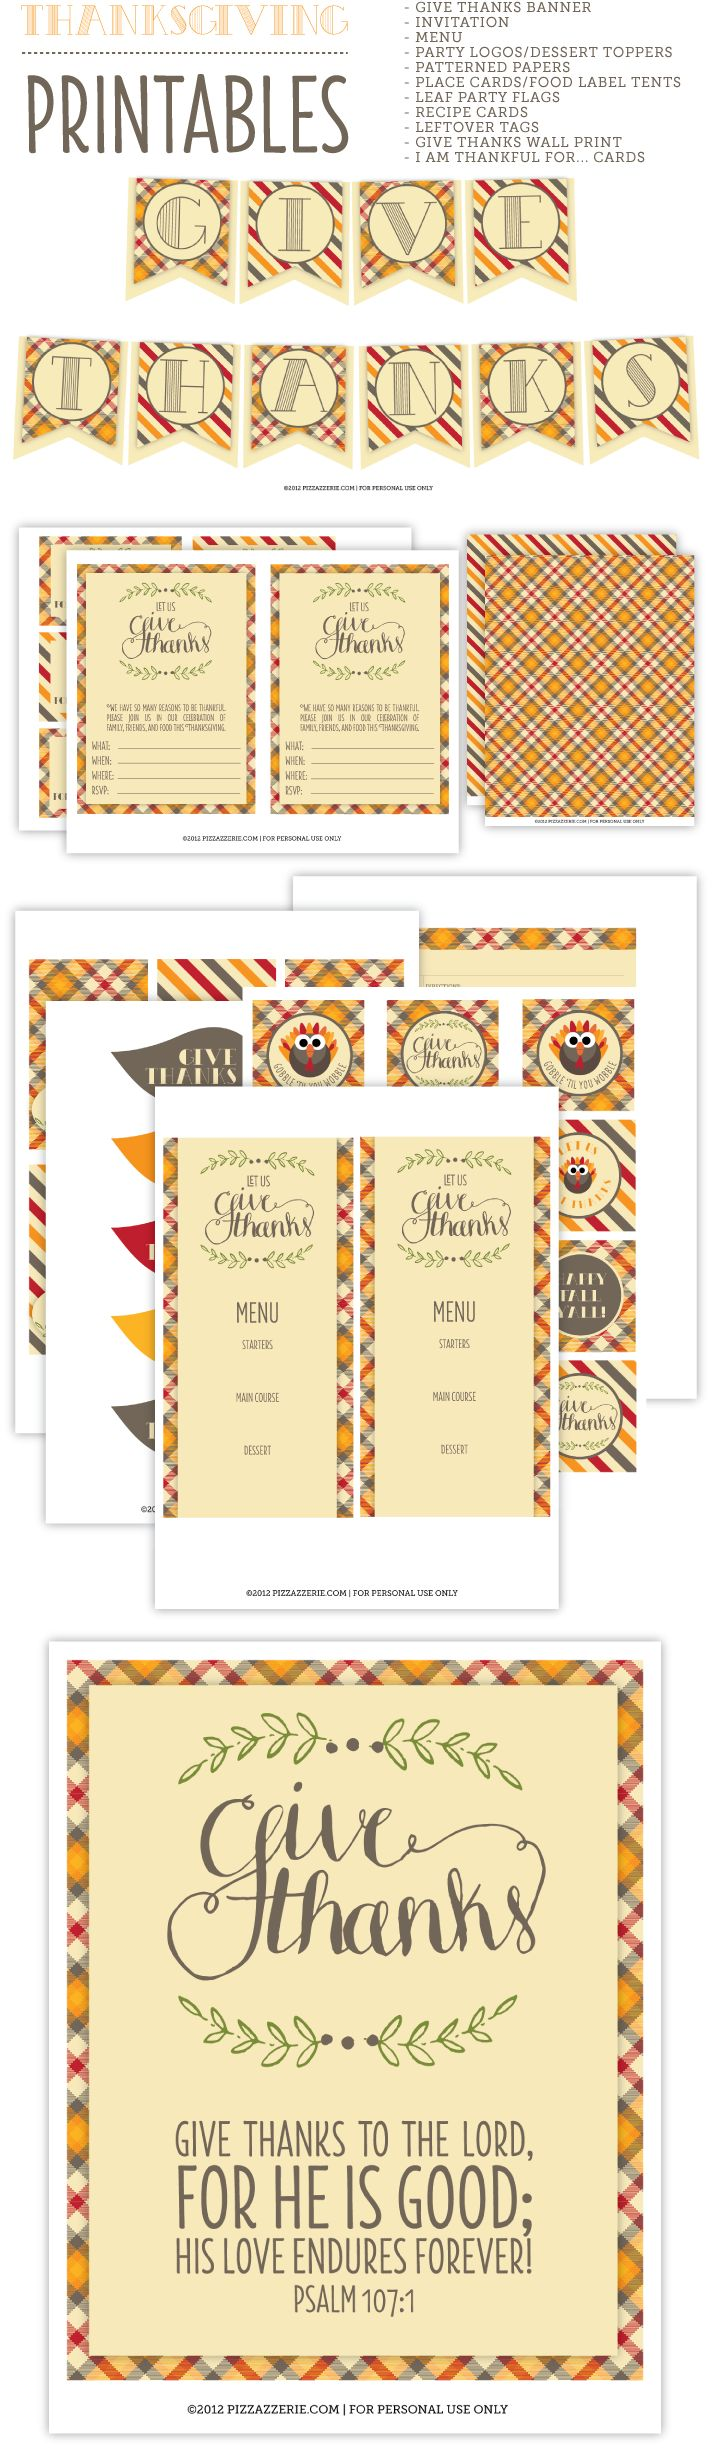 Craft a Fabulous Thanksgiving {Free Download} on http://pizzazzerie.com - Give Thanks To The Lord For He Is Good!